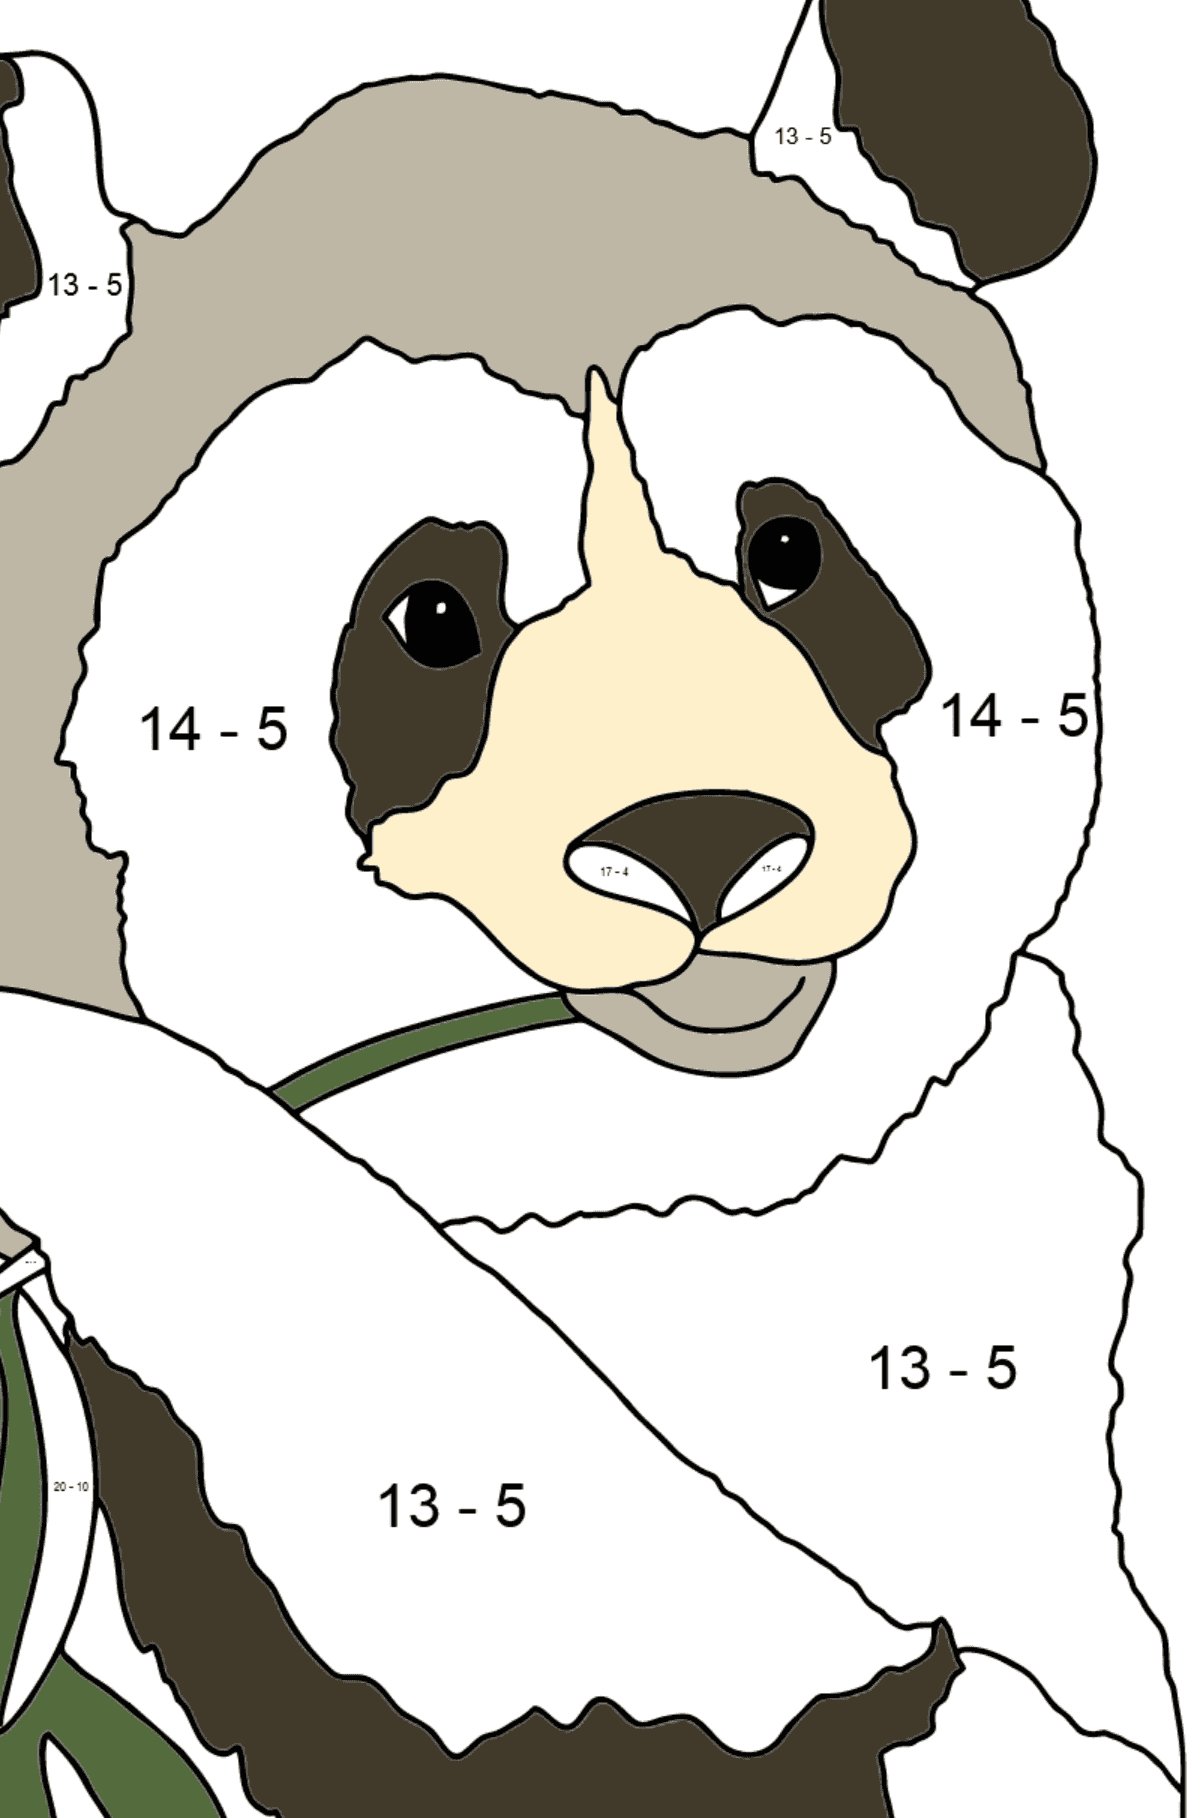 Coloring Page - A Panda is Eating Bamboo Stems and Leaves - Math Coloring - Subtraction for Kids